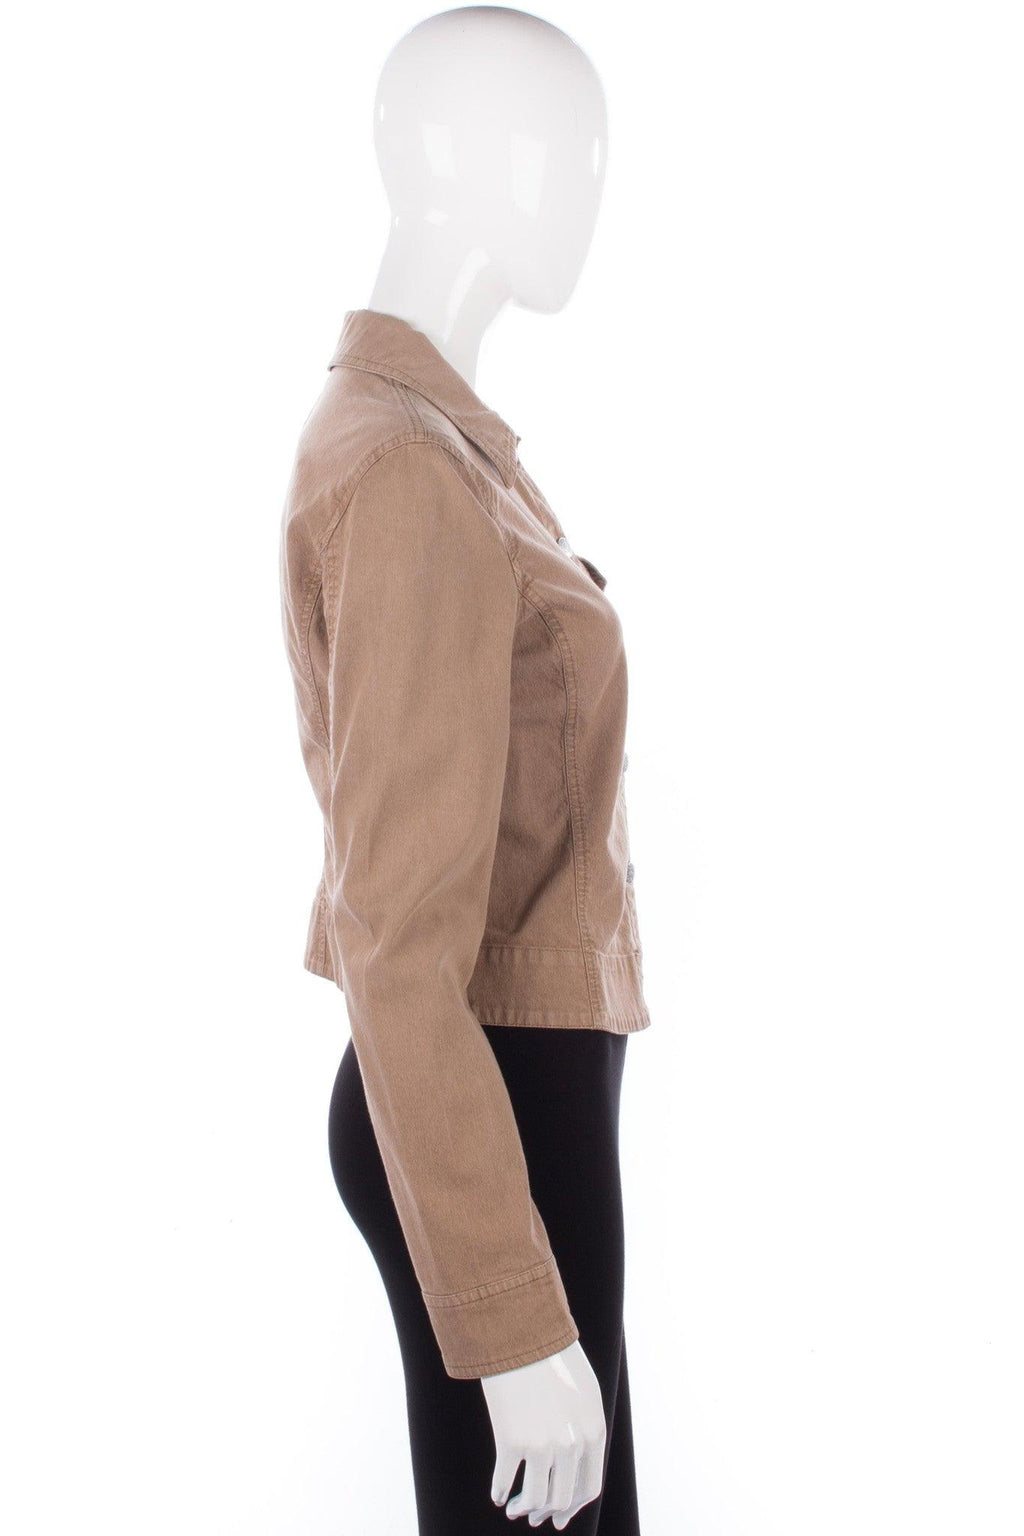 Armani Jeans Jacket Cotton Camel Colour Size 12